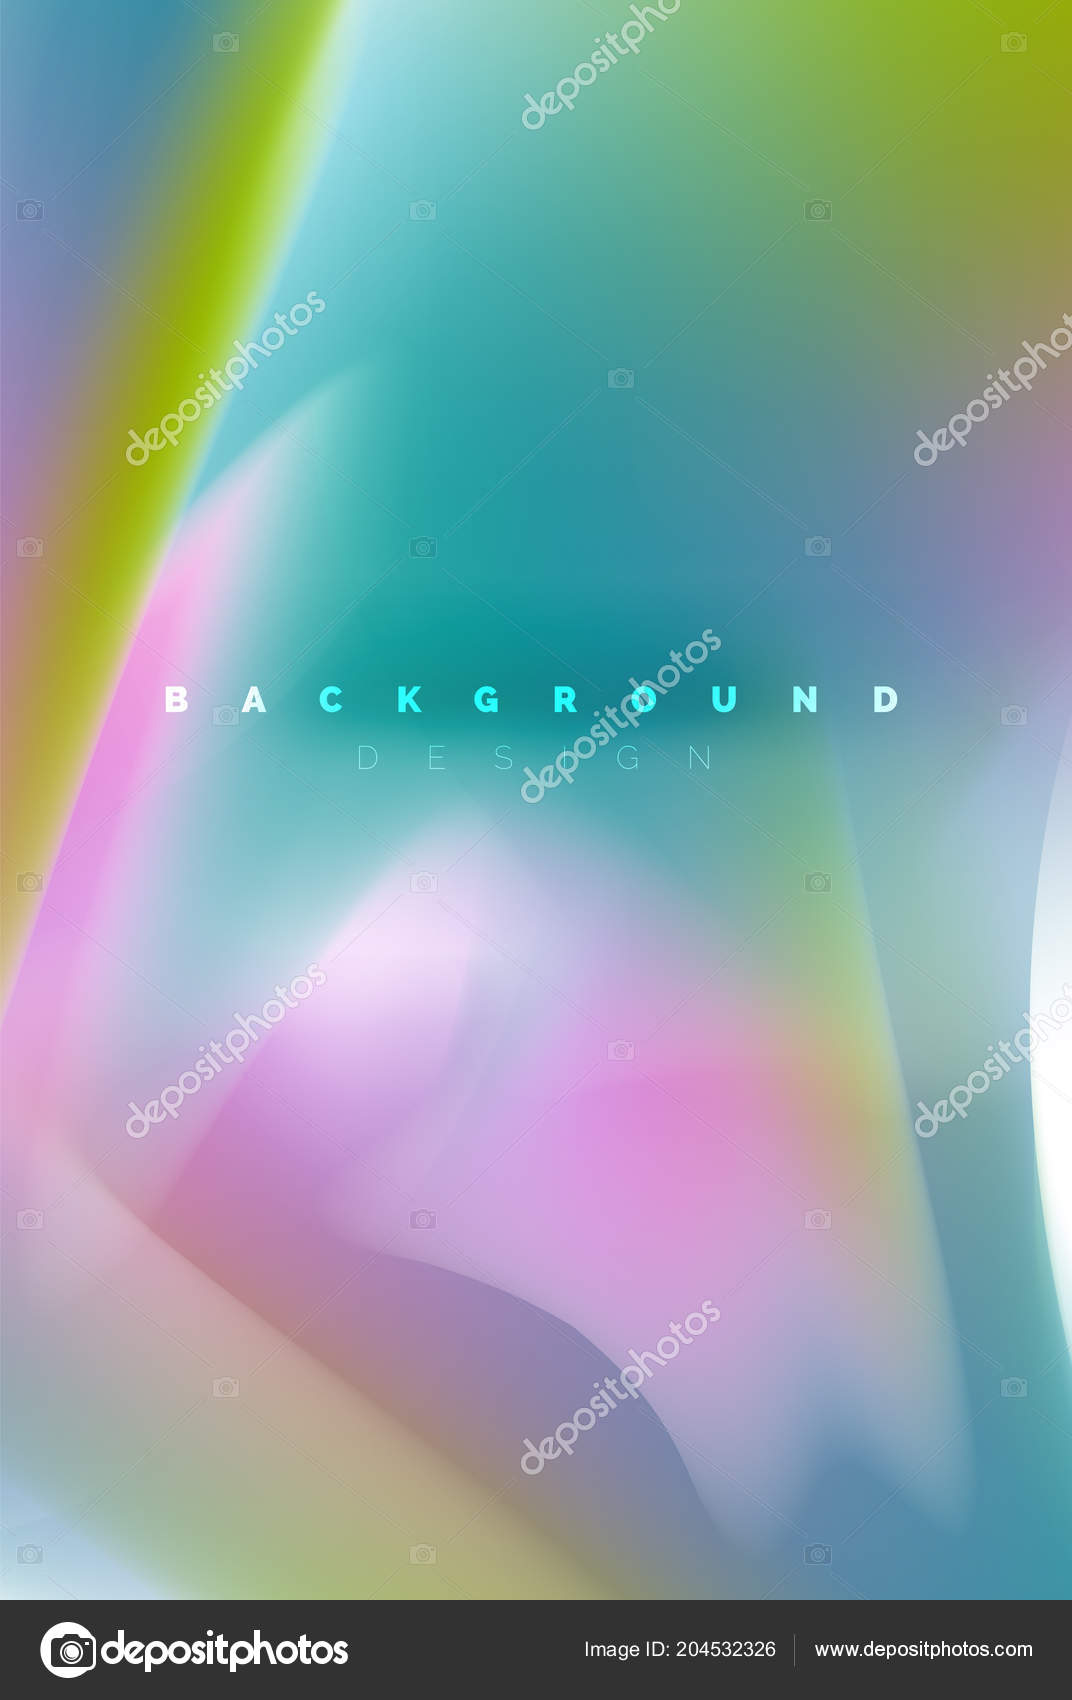 Holographic Paint Explosion Design Fluid Colors Flow Colorful Storm Liquid Mixing Colours Motion Concept Trendy Abstract Background Layout Template For